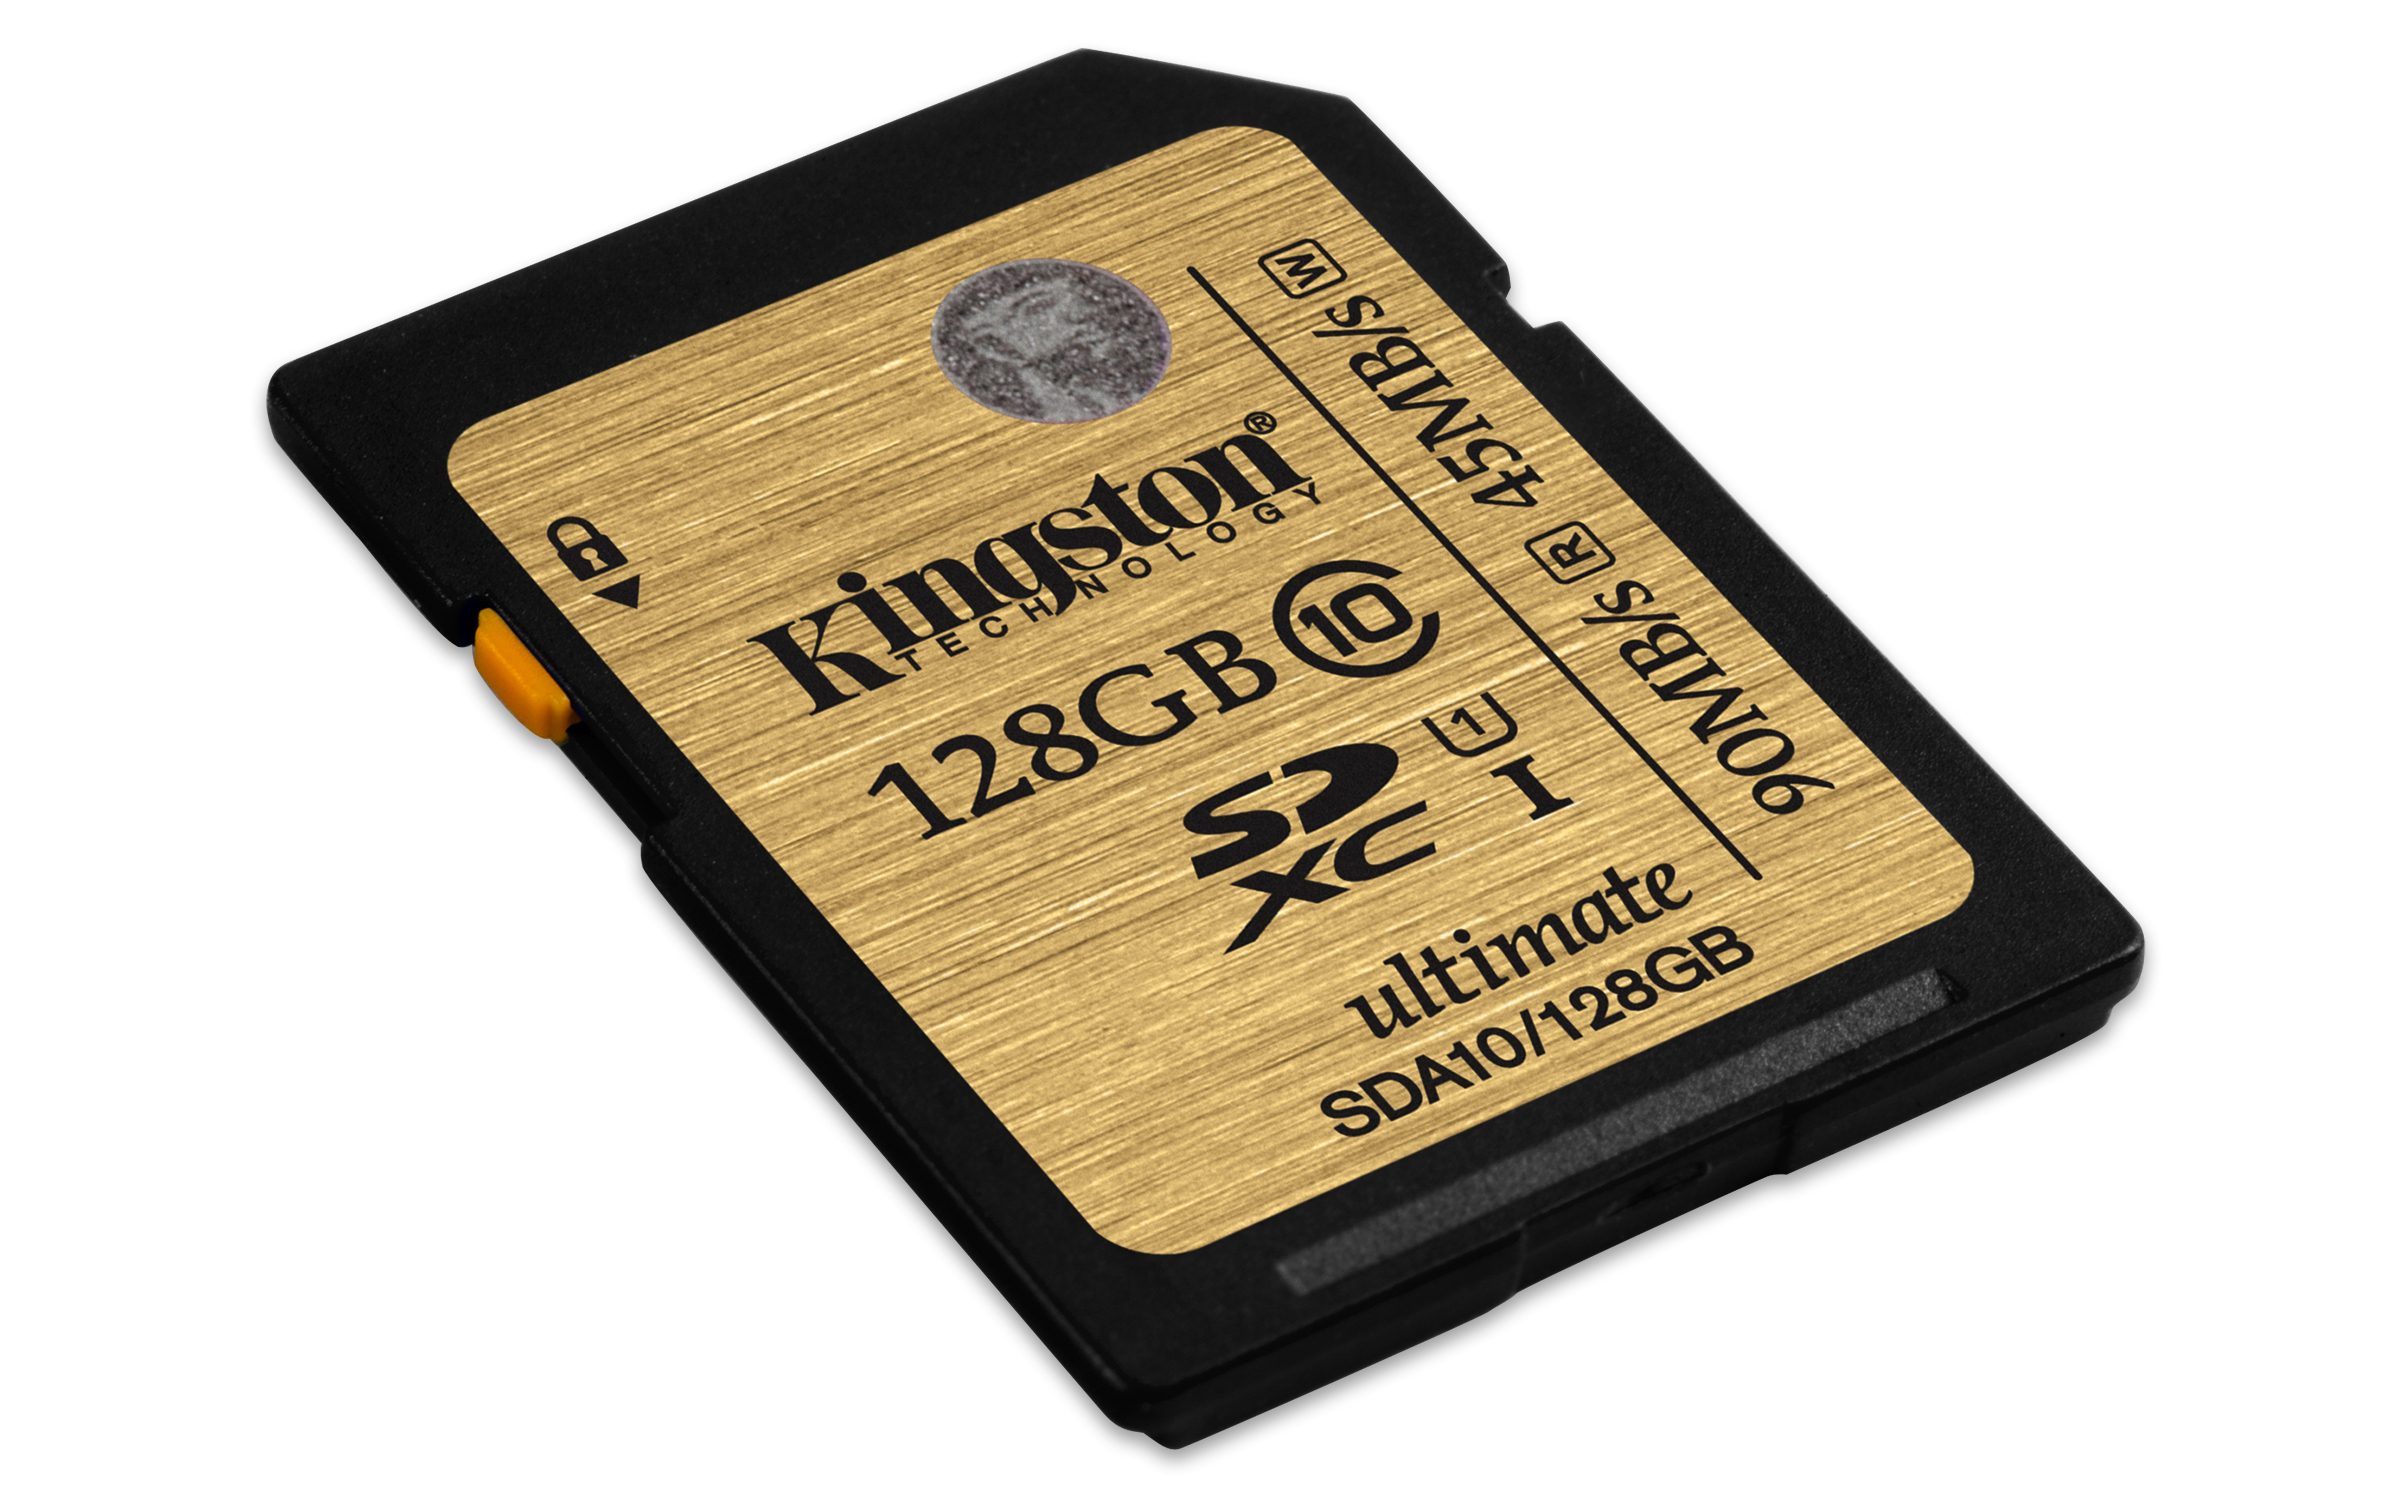 KINGSTON 128GB SDXC Class 10 UHS-I 90MB/s R, 45MB/s W Flash Card